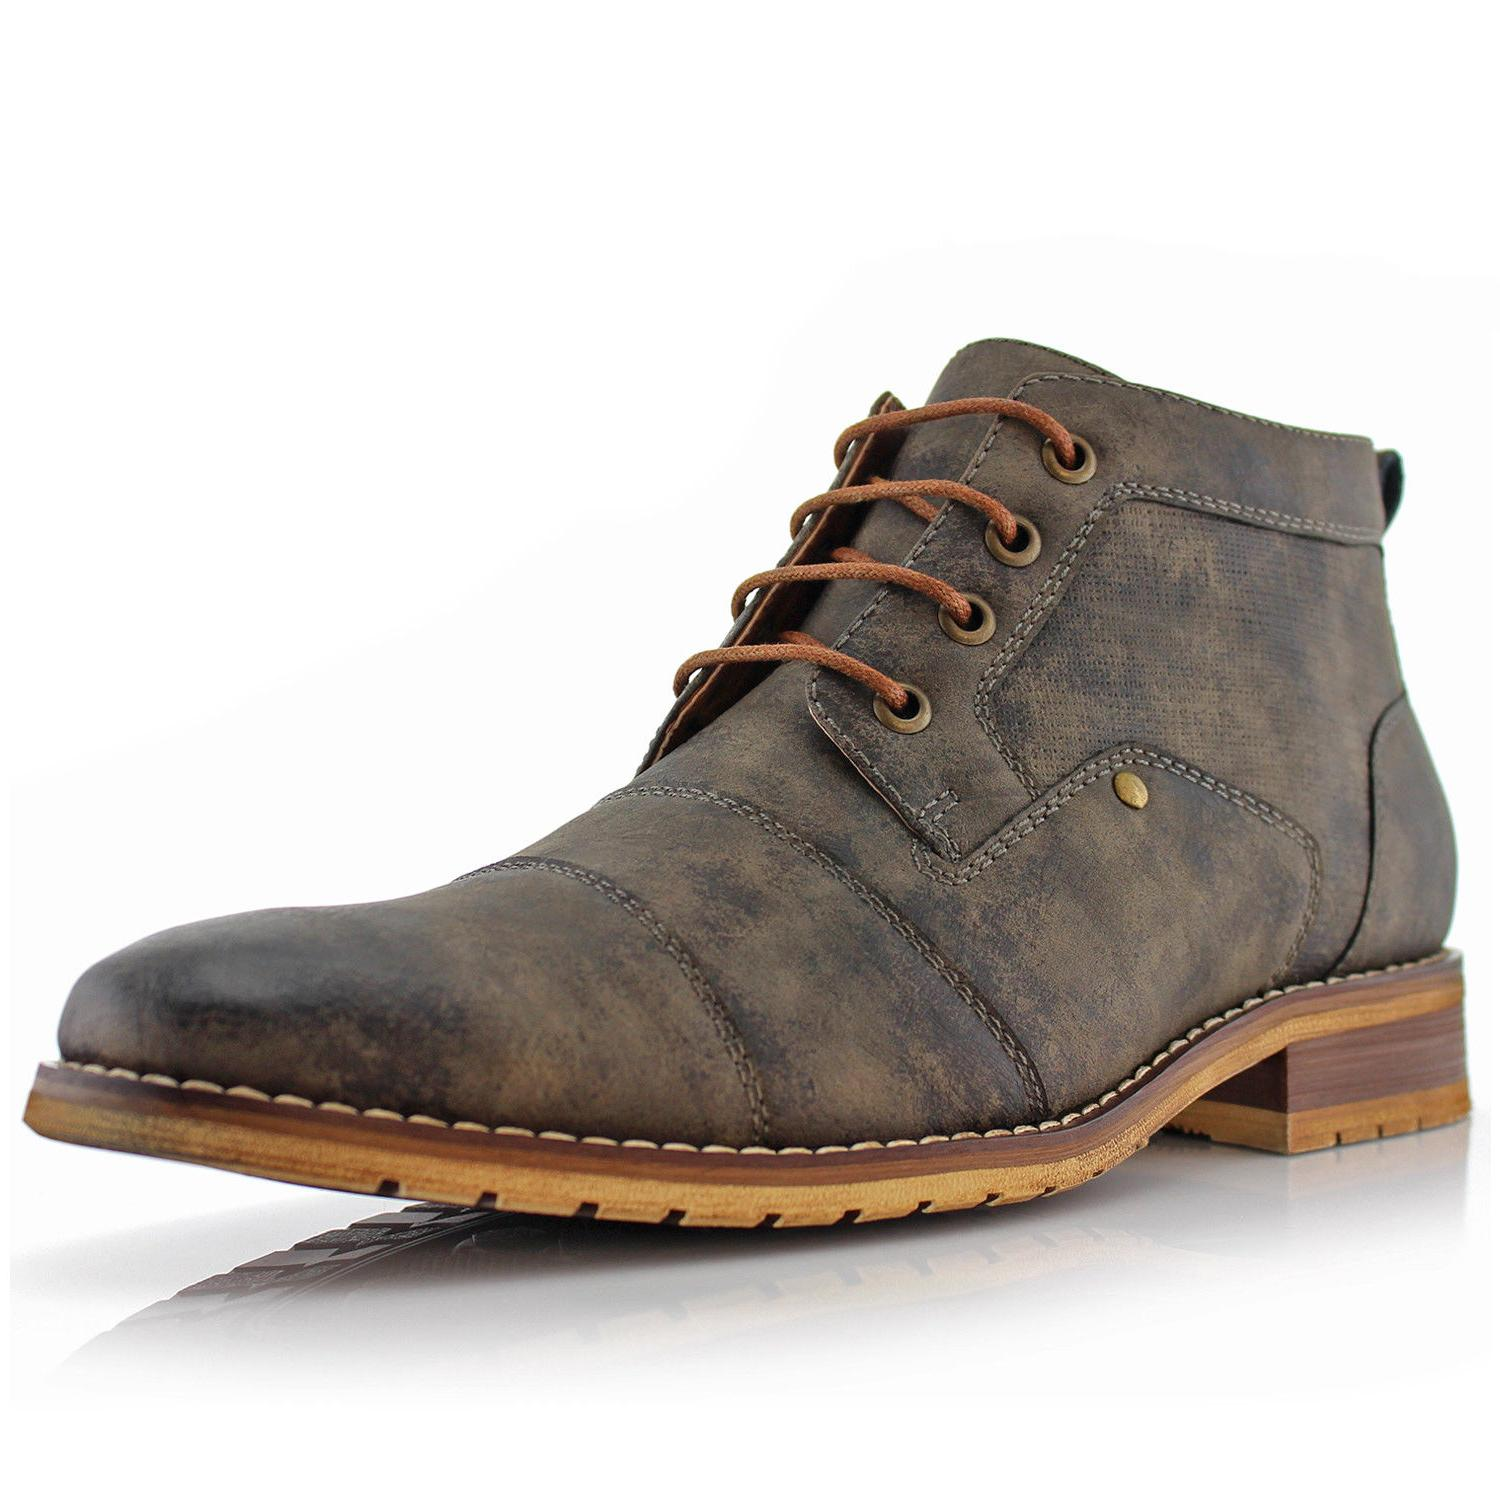 Men's Casual Lace Up Mid Chukka Leather Zipper